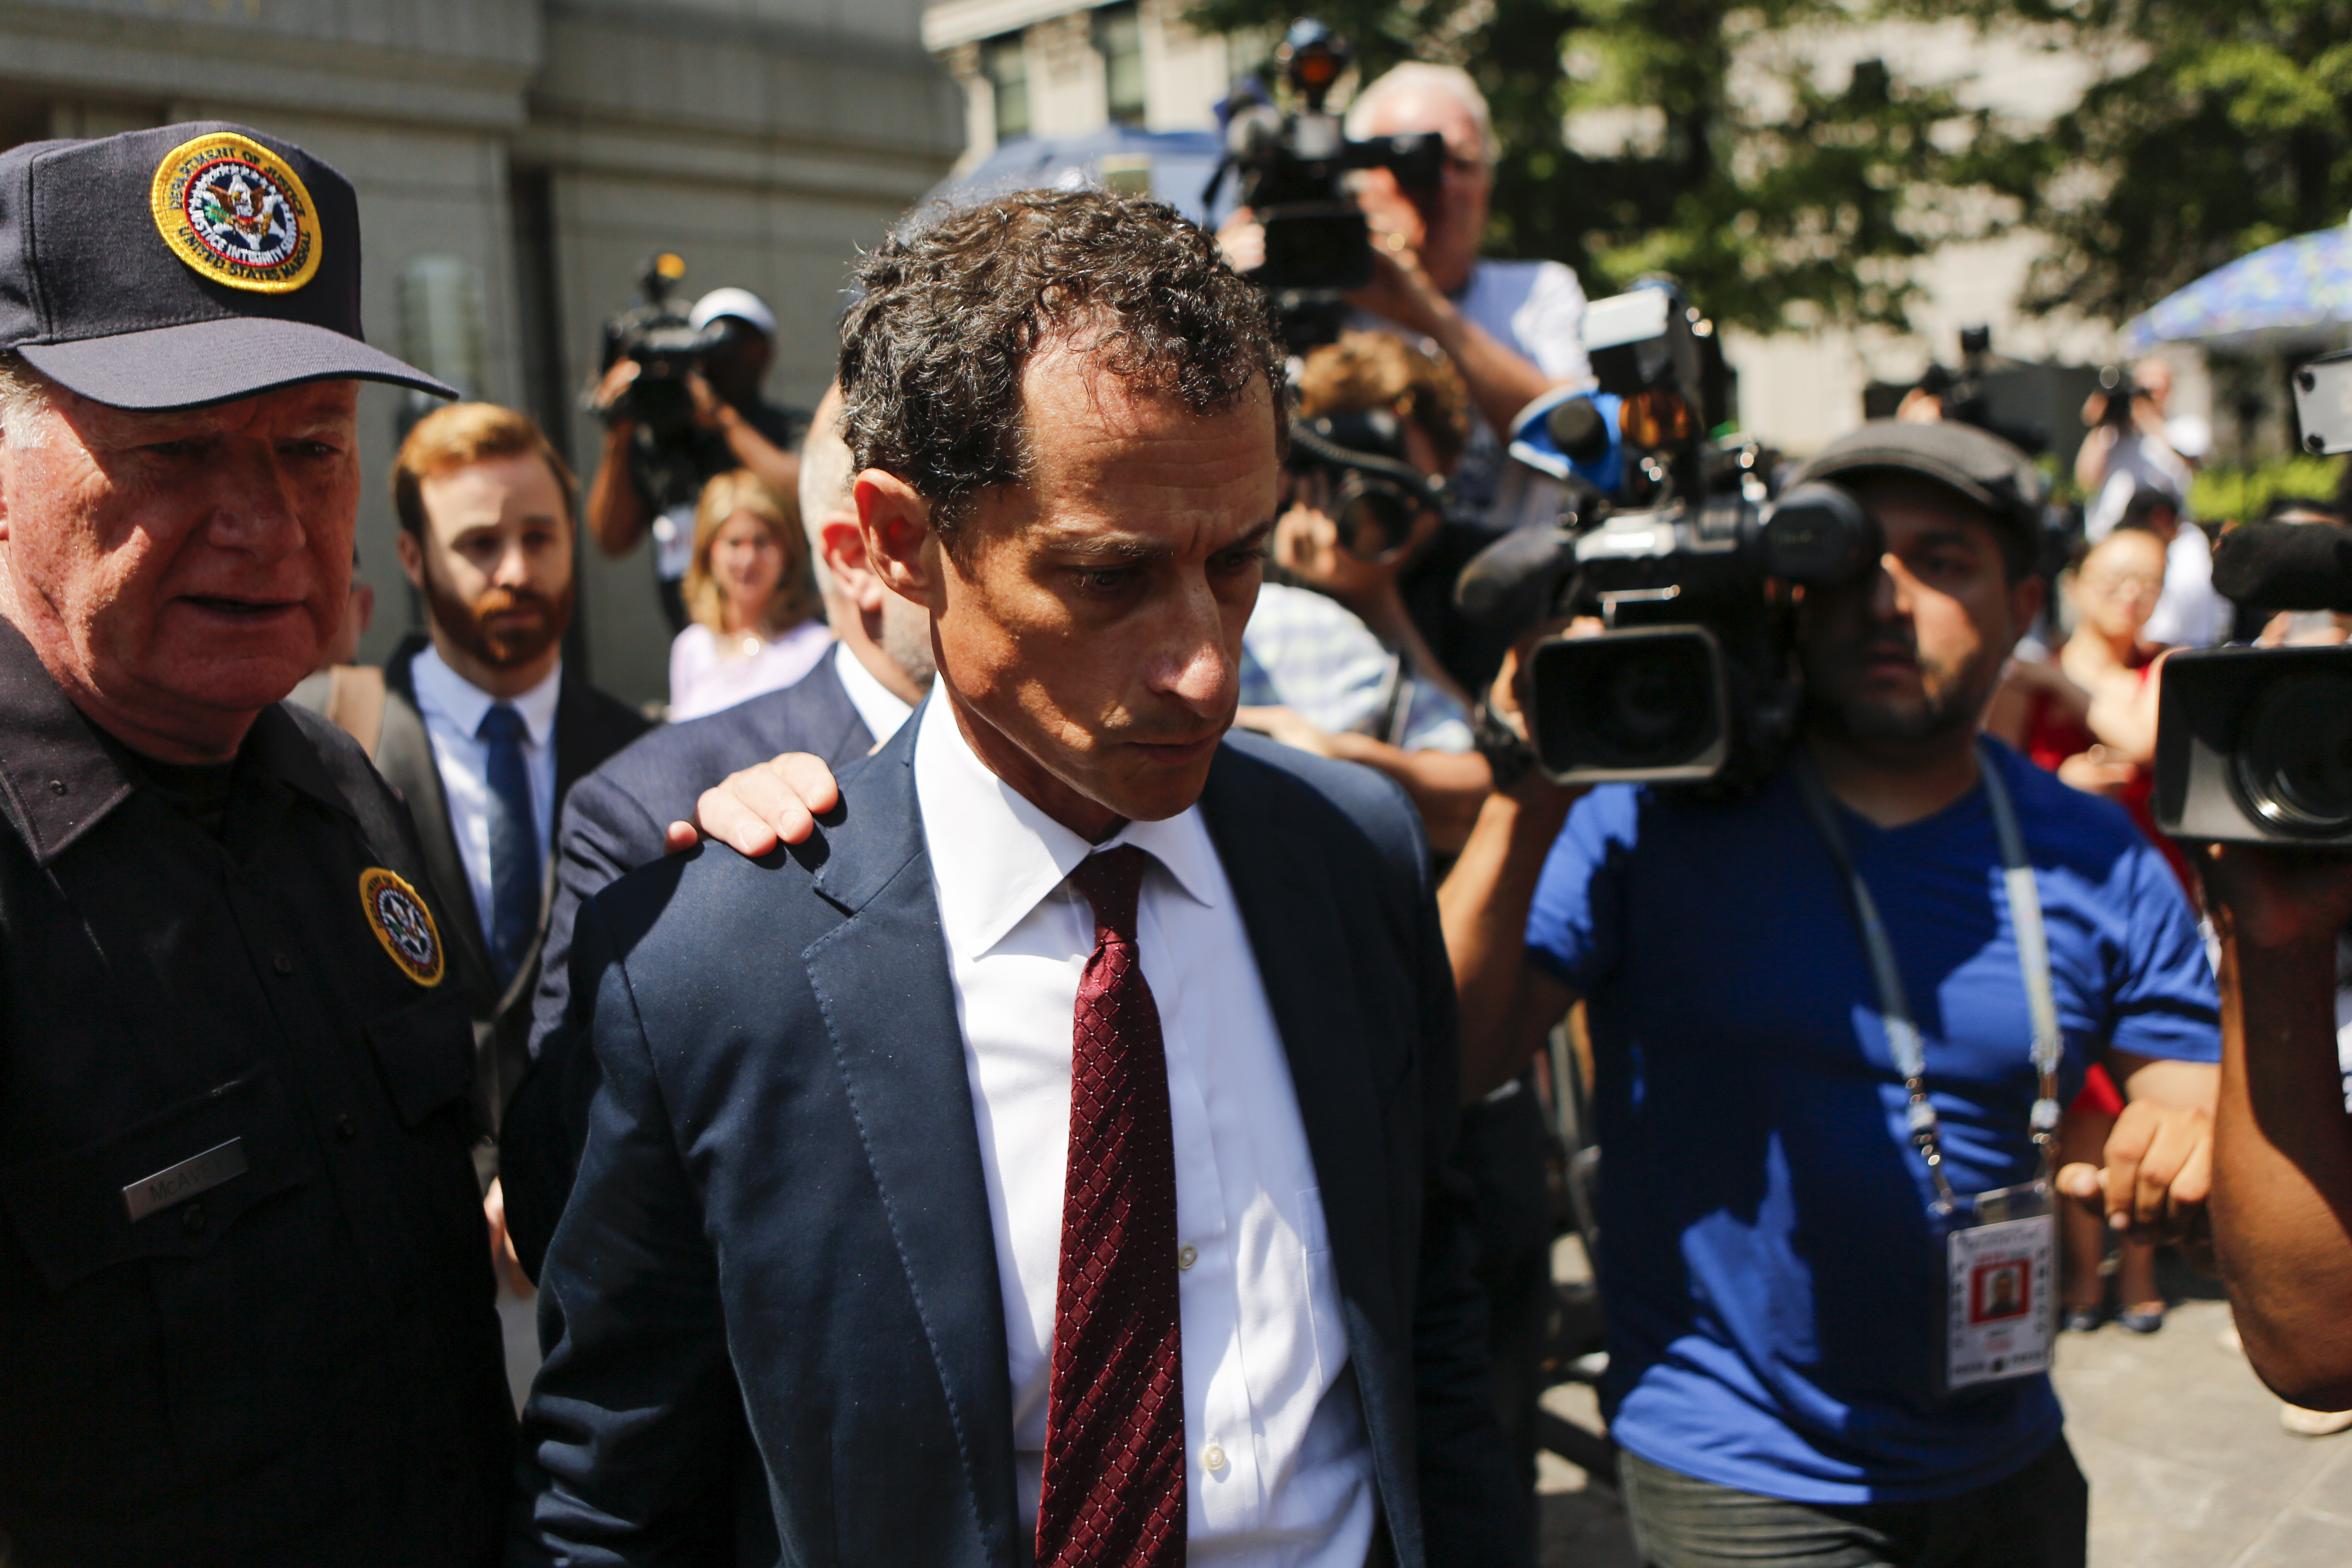 Former Democratic Congressman Anthony Weiner (C) exits federal court in Manhattan after pleading guilty in sexting case on May 19, 2017 in New York City. Weiner, who resigned from Congress over a sexting scanal, pleaded guilty on friday to federal charges of transmitting sexual material to a minor and could face a prison term. (Getty Images)